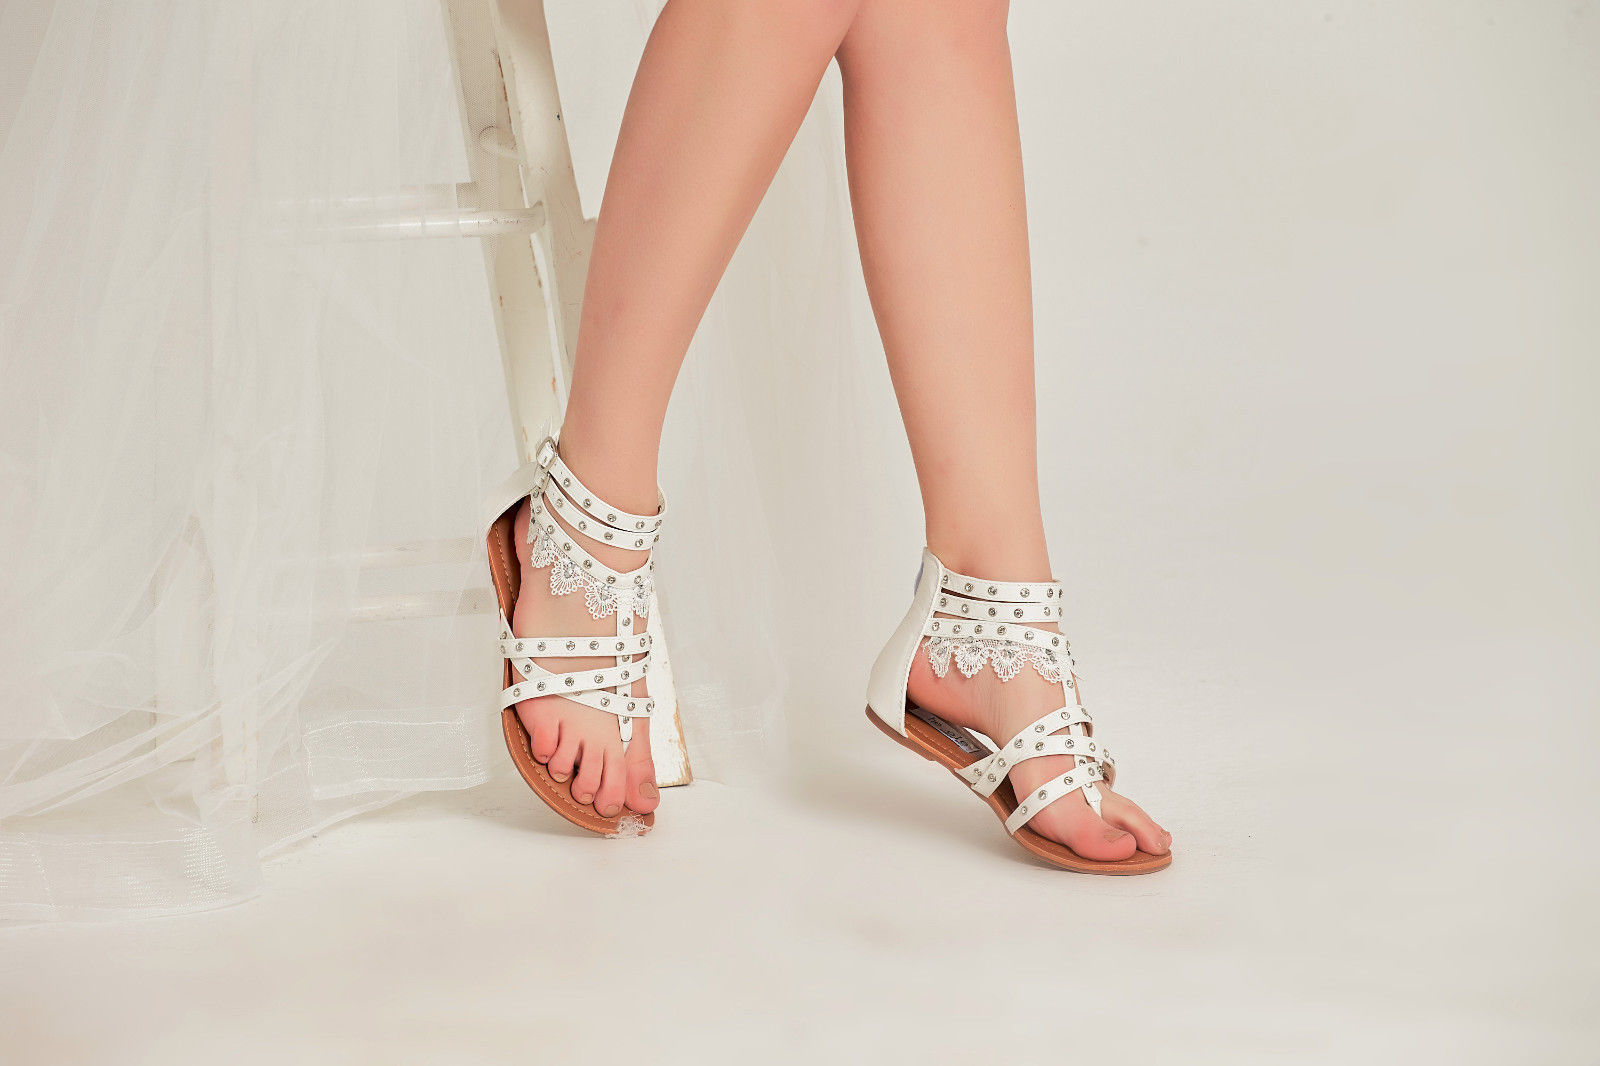 Details about SheSole Womens Summer Shoes Flat Gladiator Sandals Flip Flops Buckle Casual Rome